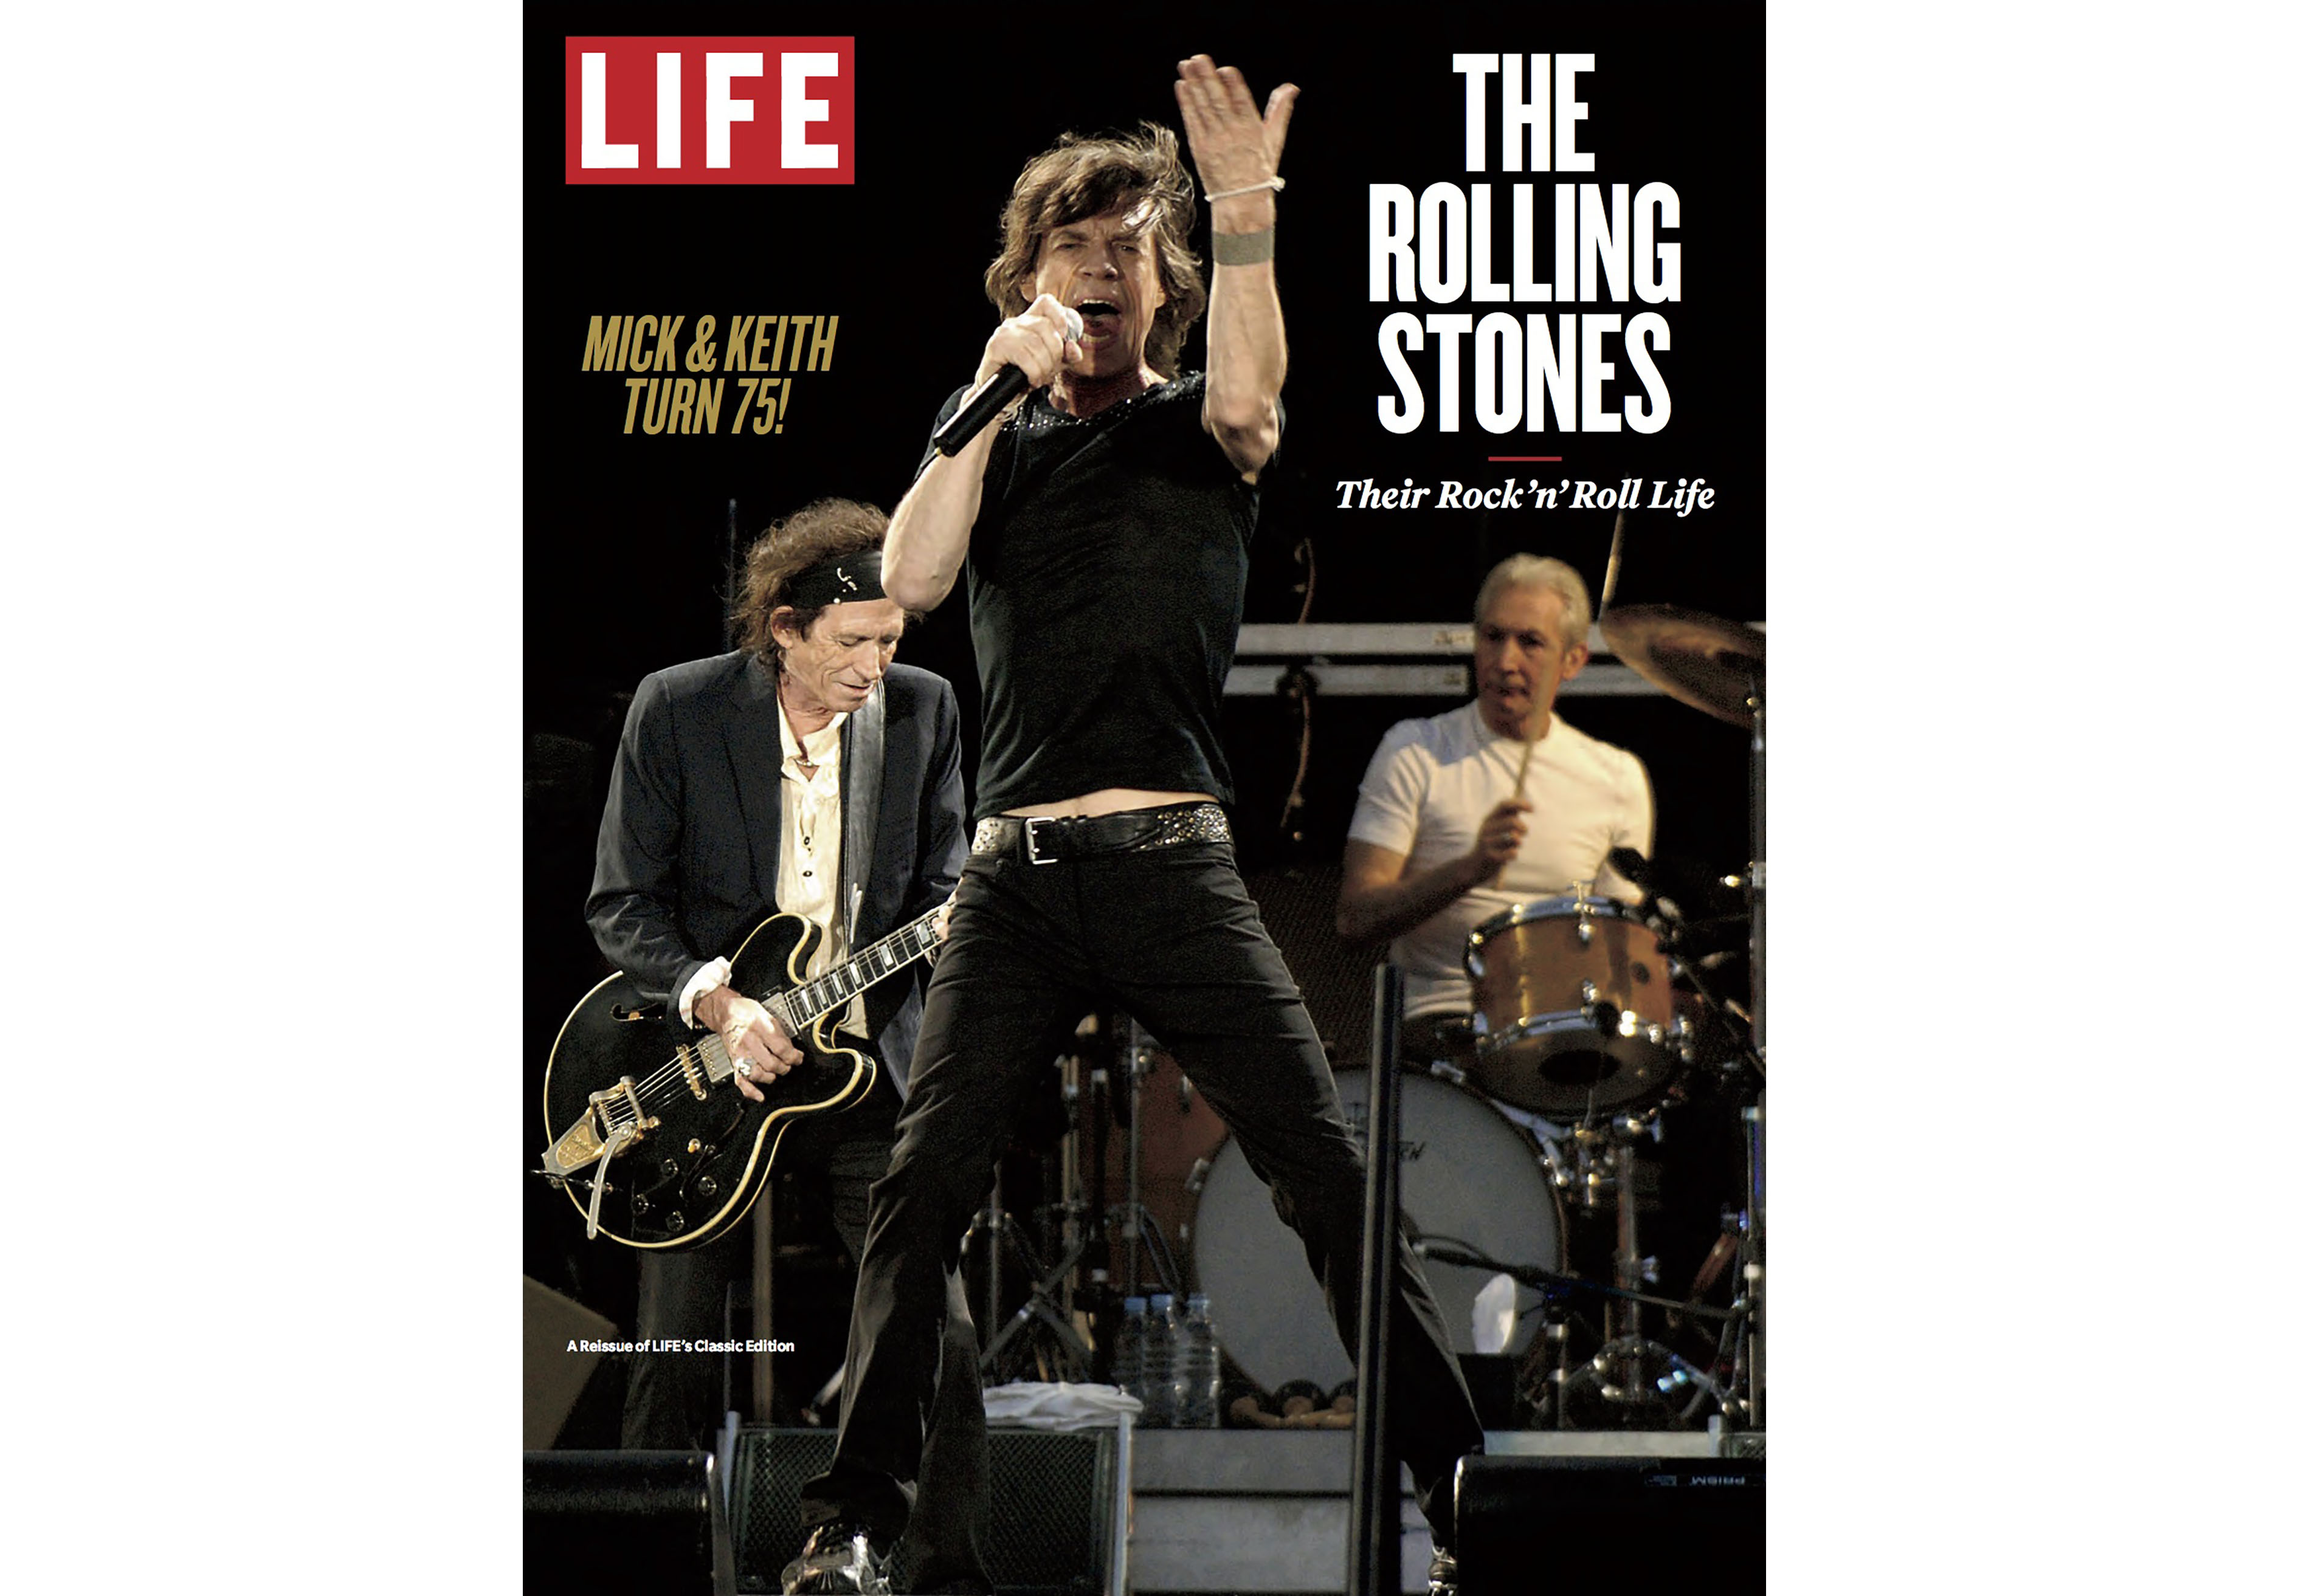 Mick Jagger on the cover of LIFE.